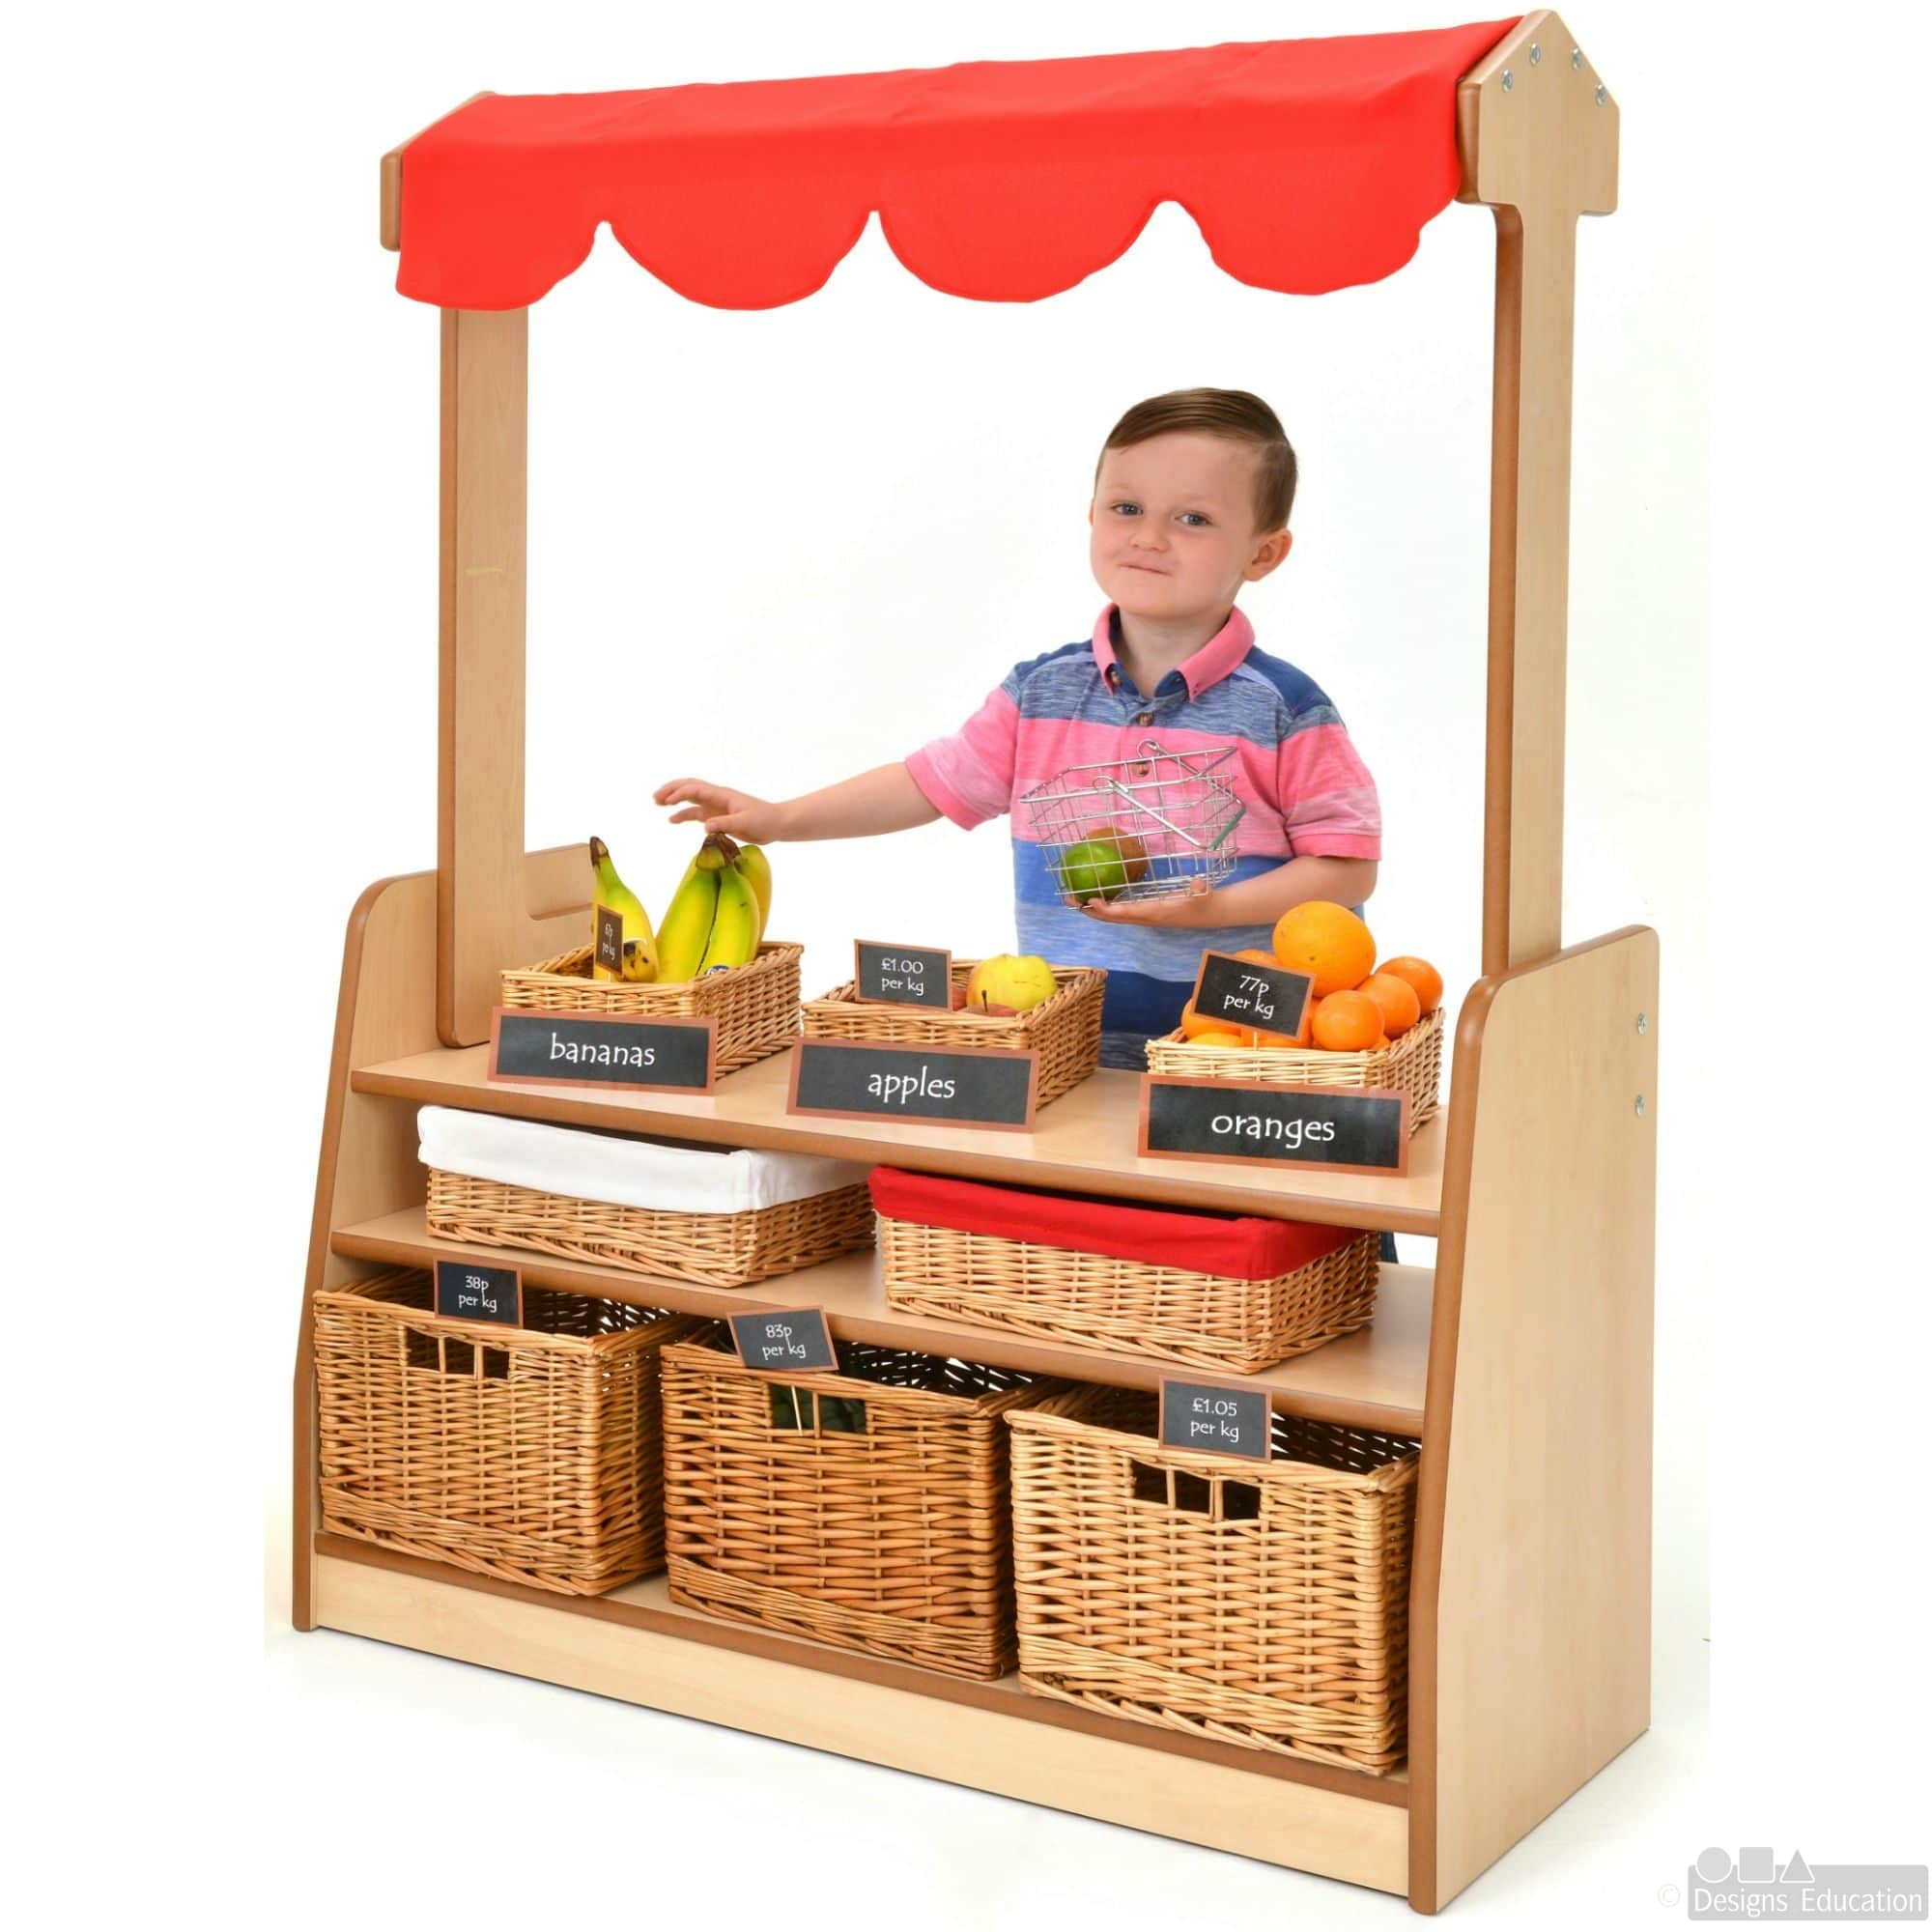 Toddler Role Play Unit Designs For Education